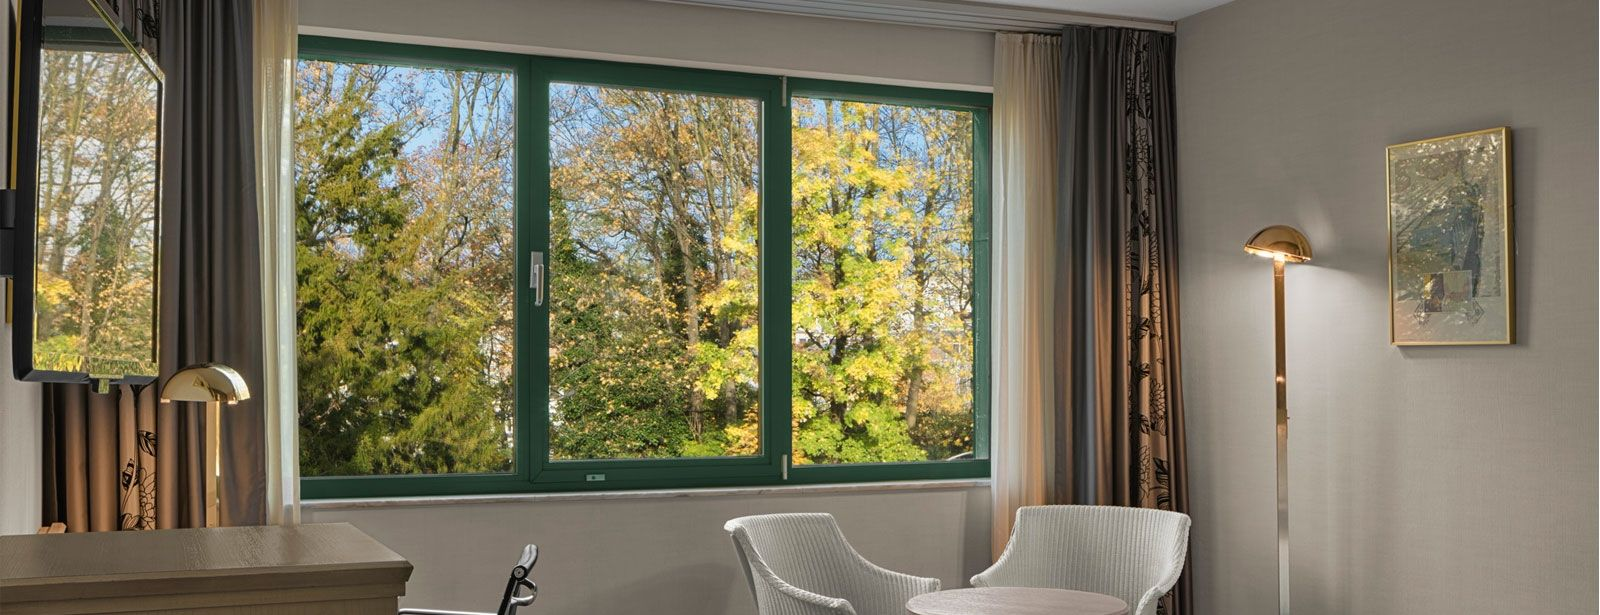 Quiet Classic Garden Room | Four Points by Sheraton Brussels